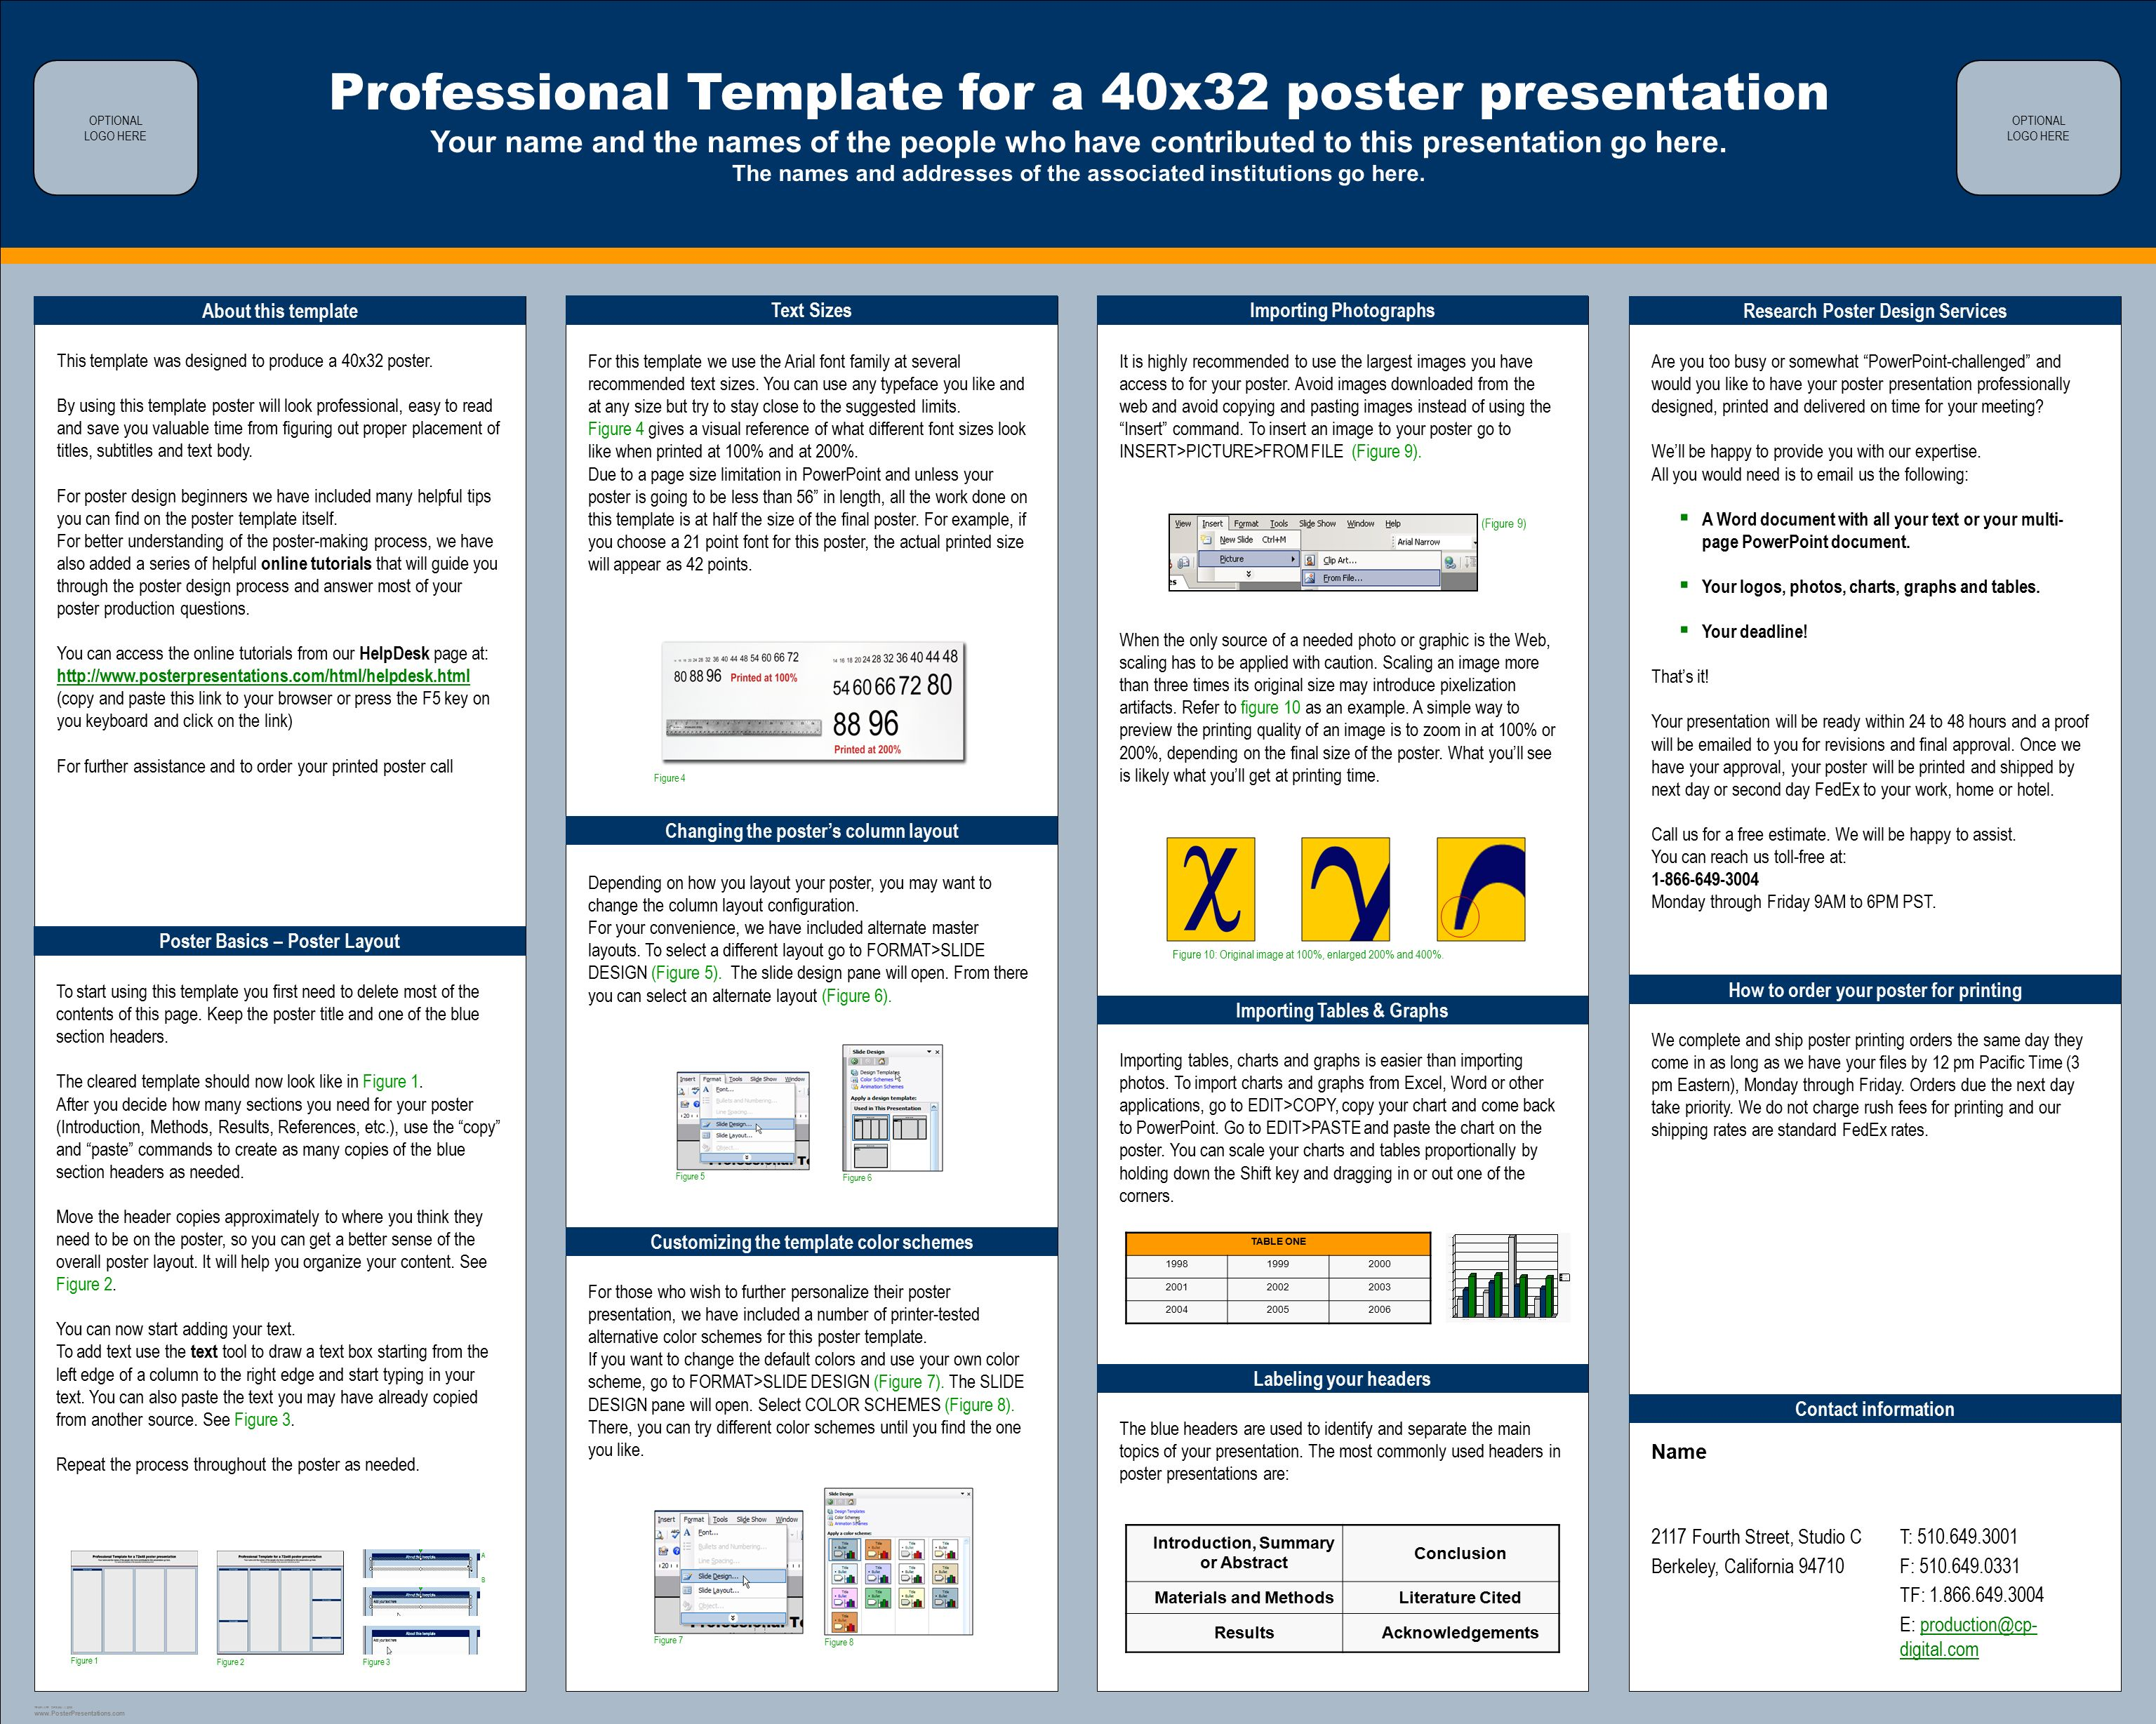 Professional Template for a 40x32 poster presentation ...